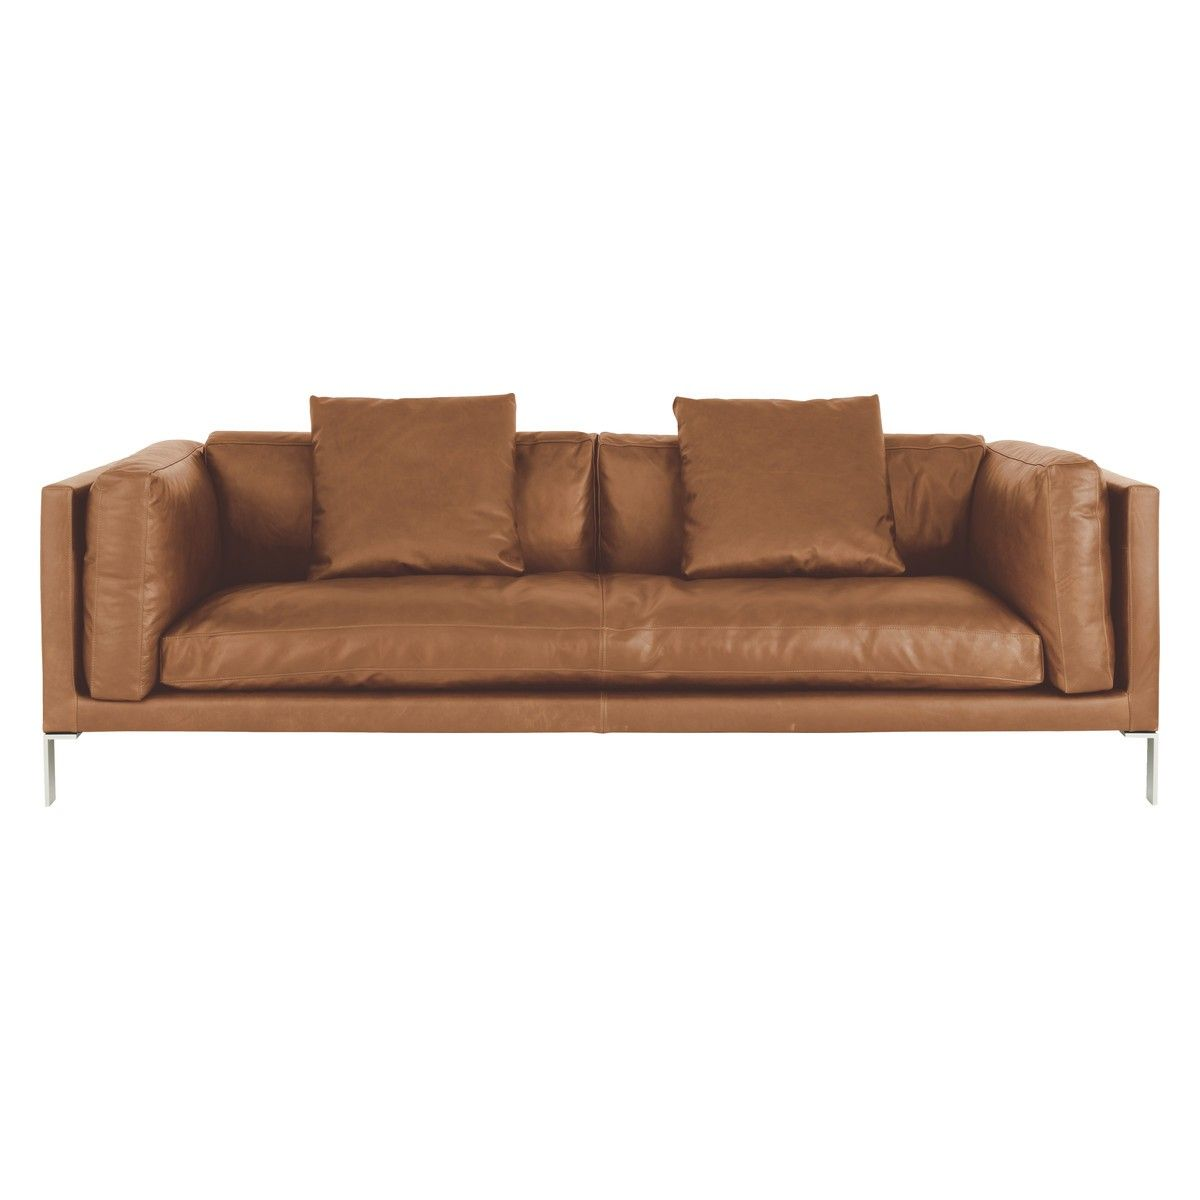 Habitat Sofa Newman Mid Tan Leather 3 Seater Sofa Buy Now At Habitat Uk